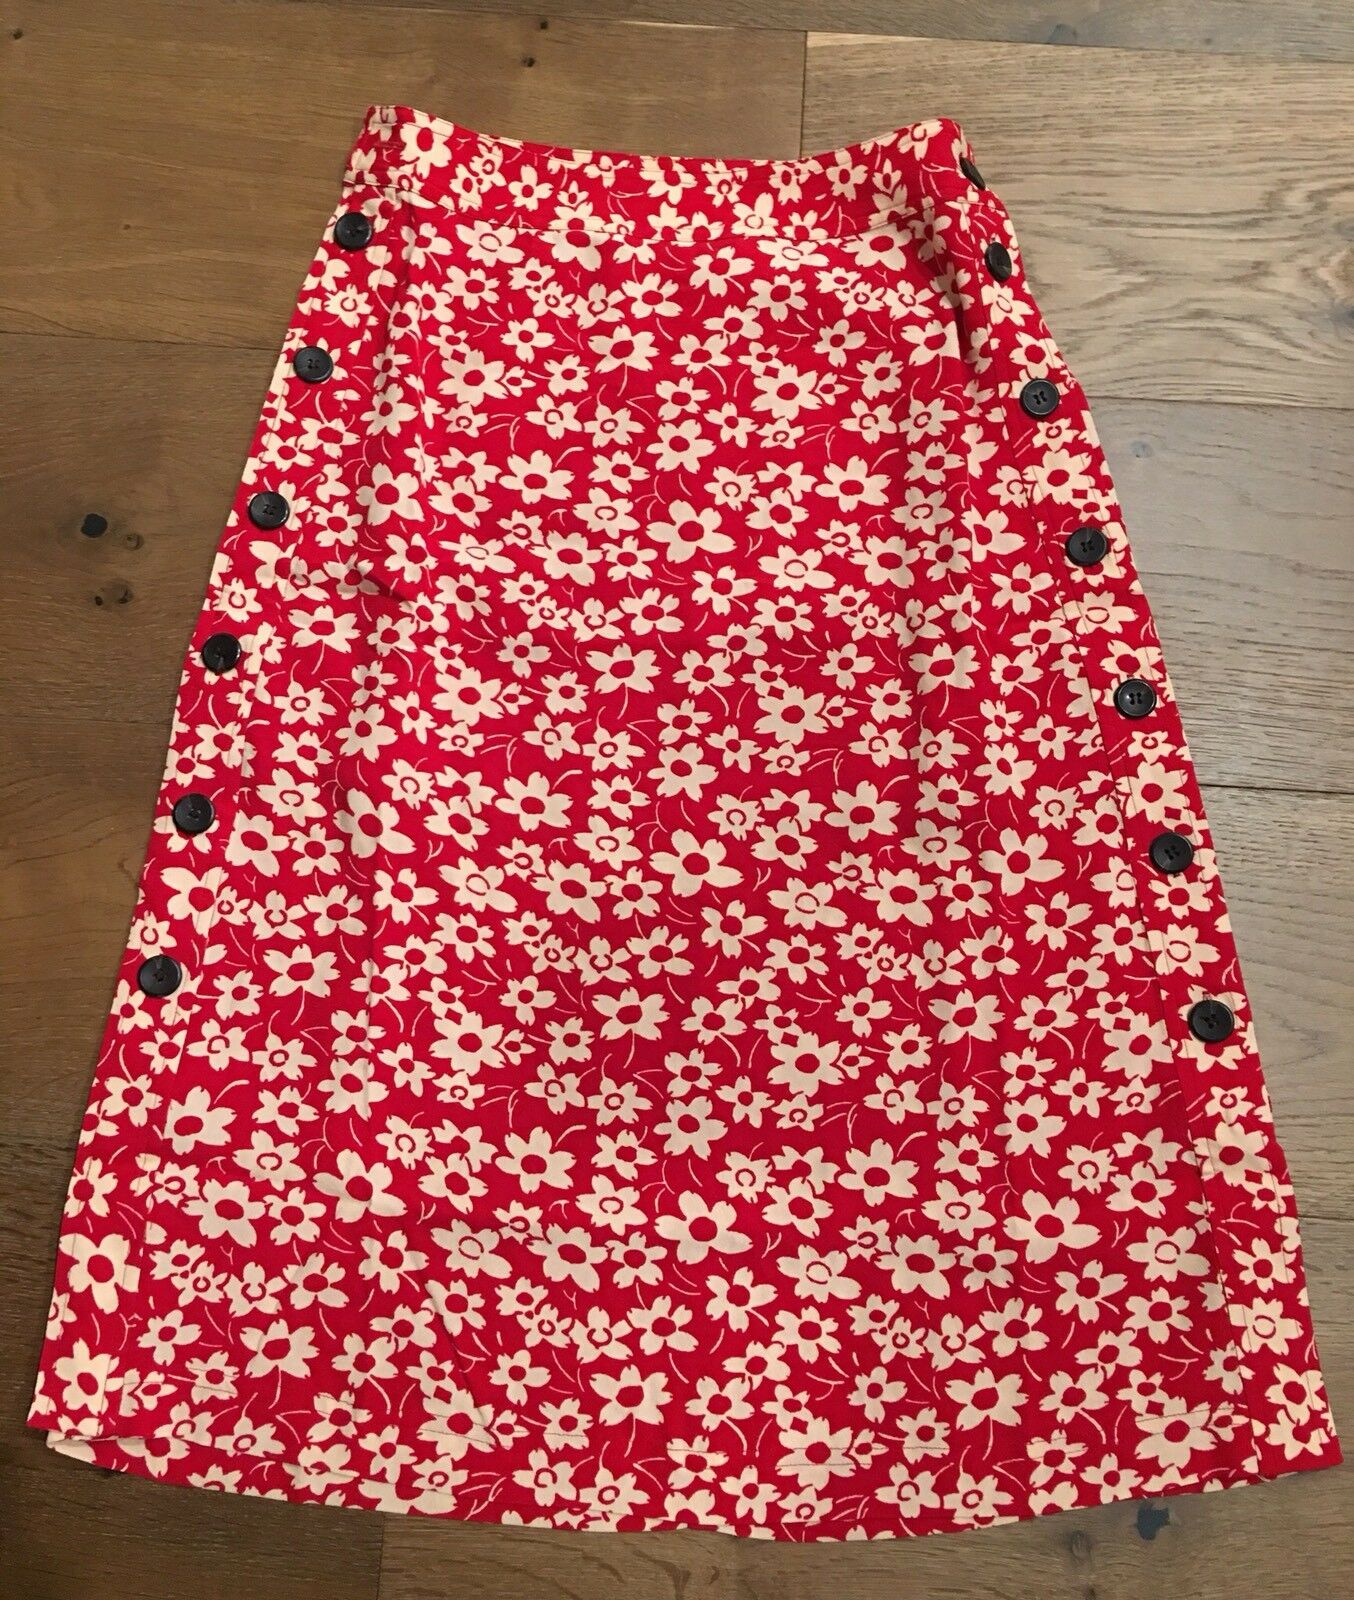 Madewell Side-Button Skirt in Full Bloom 6, Retro Floral Cranberry  98. NWT